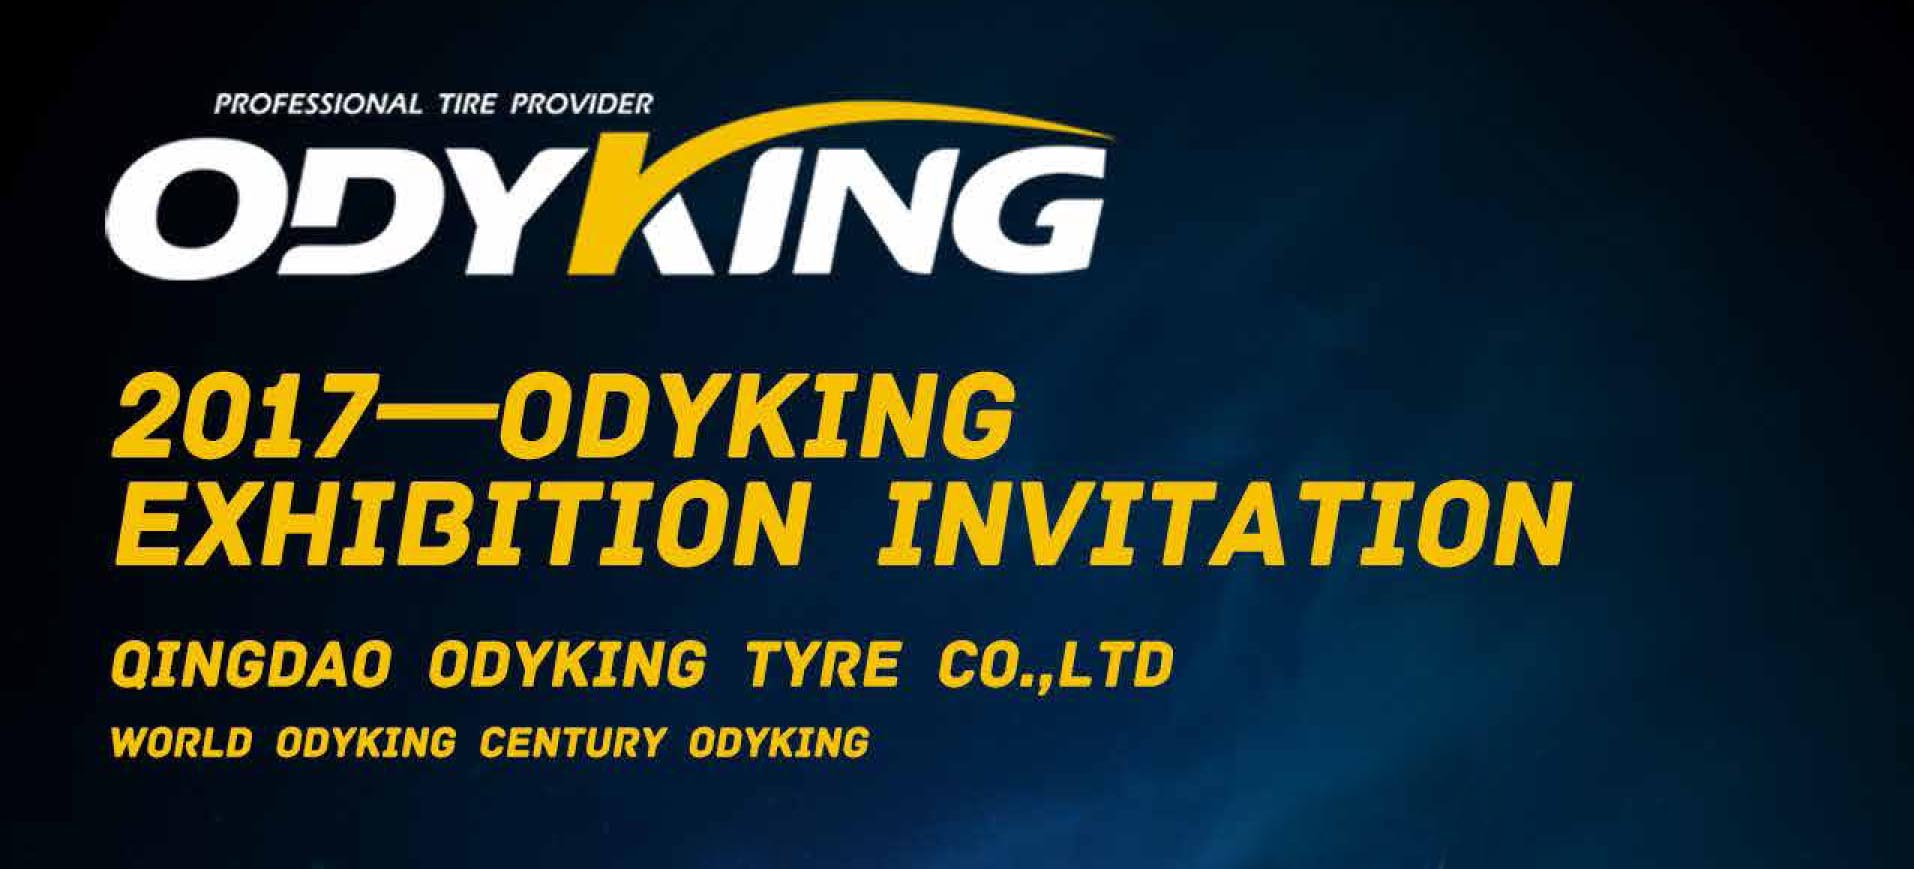 WELCOME TO VISIT ODYKING TYRE EXHIBITION in 2017